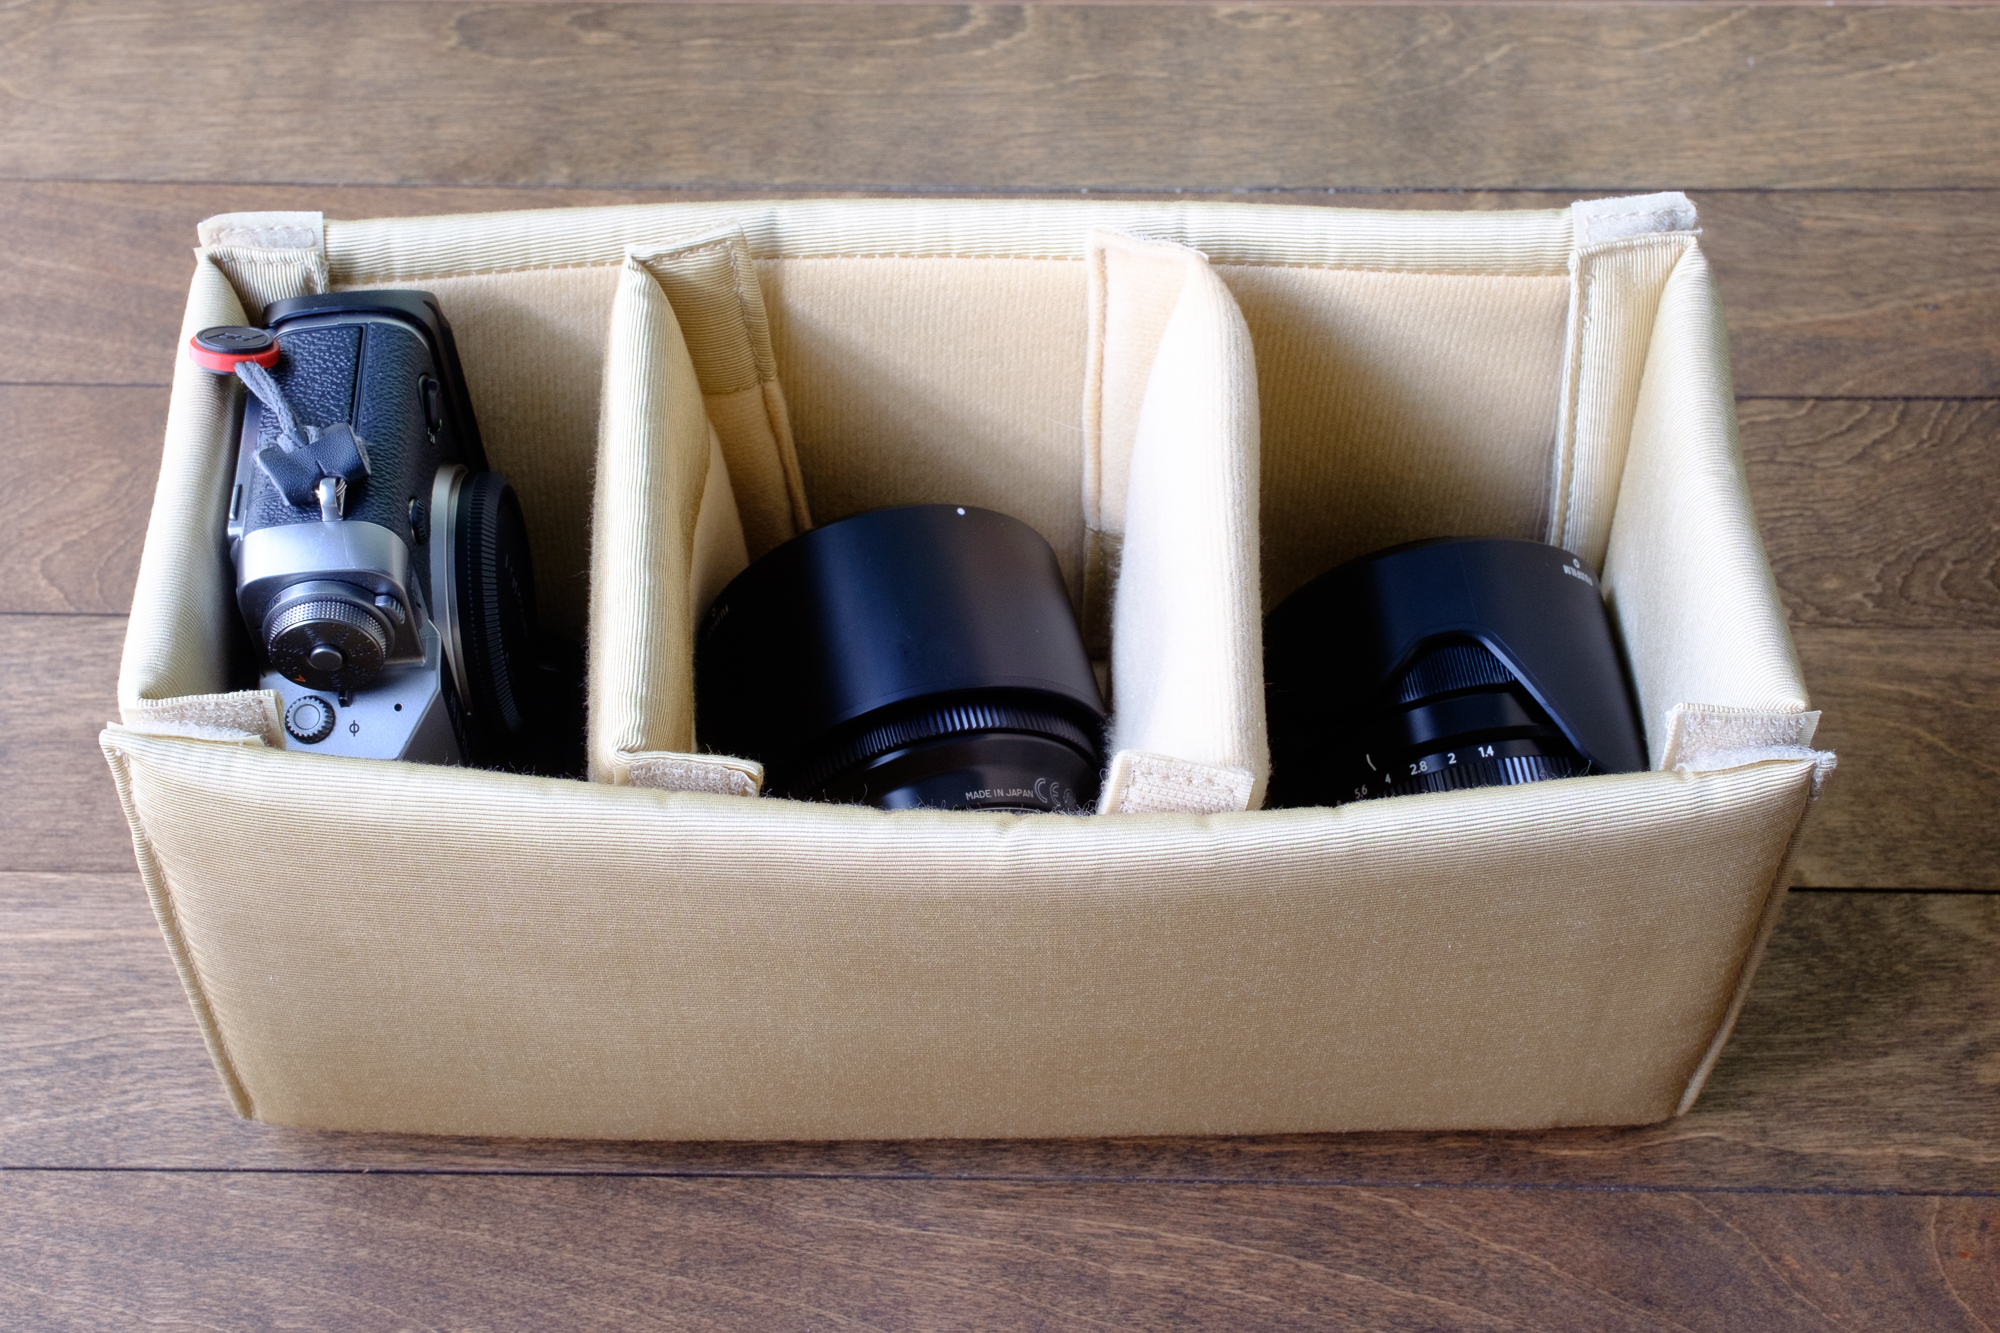 Fuji X-T1 with Fuji 23mm and 56mm (both detached)